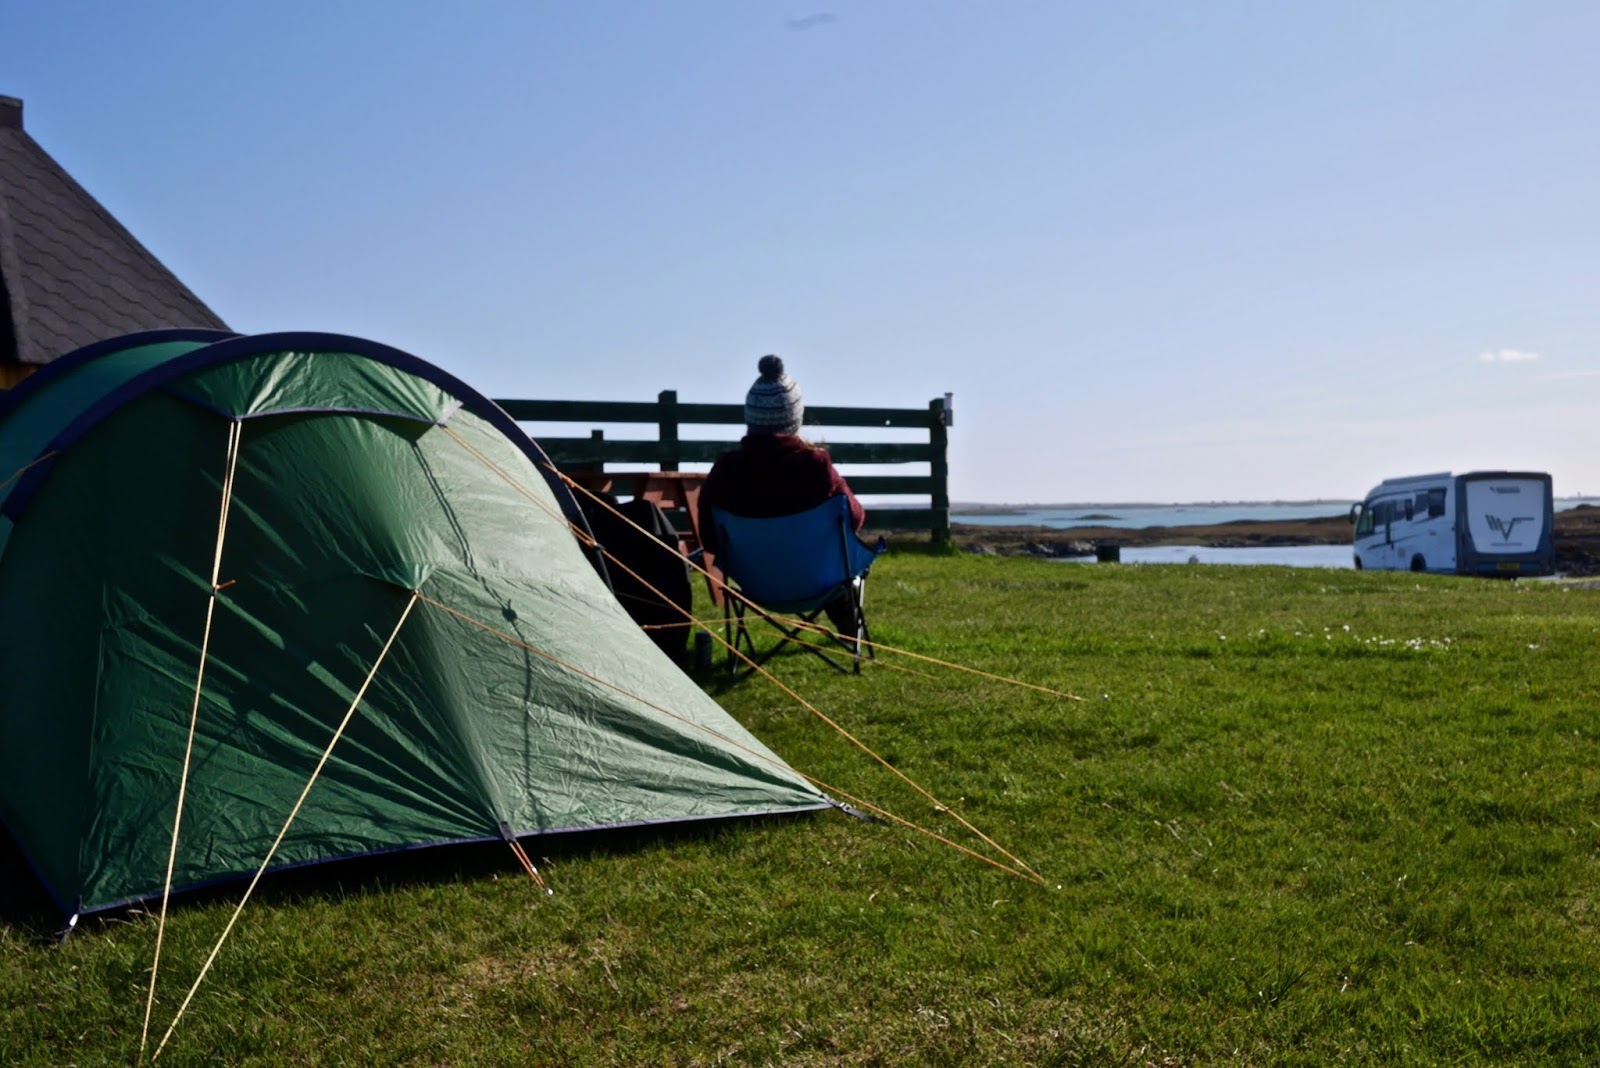 Camping in Benbecula, Scotland, Almost Chic and Cal McTravels during their Scottish Island Hopping in the outer Hebrides